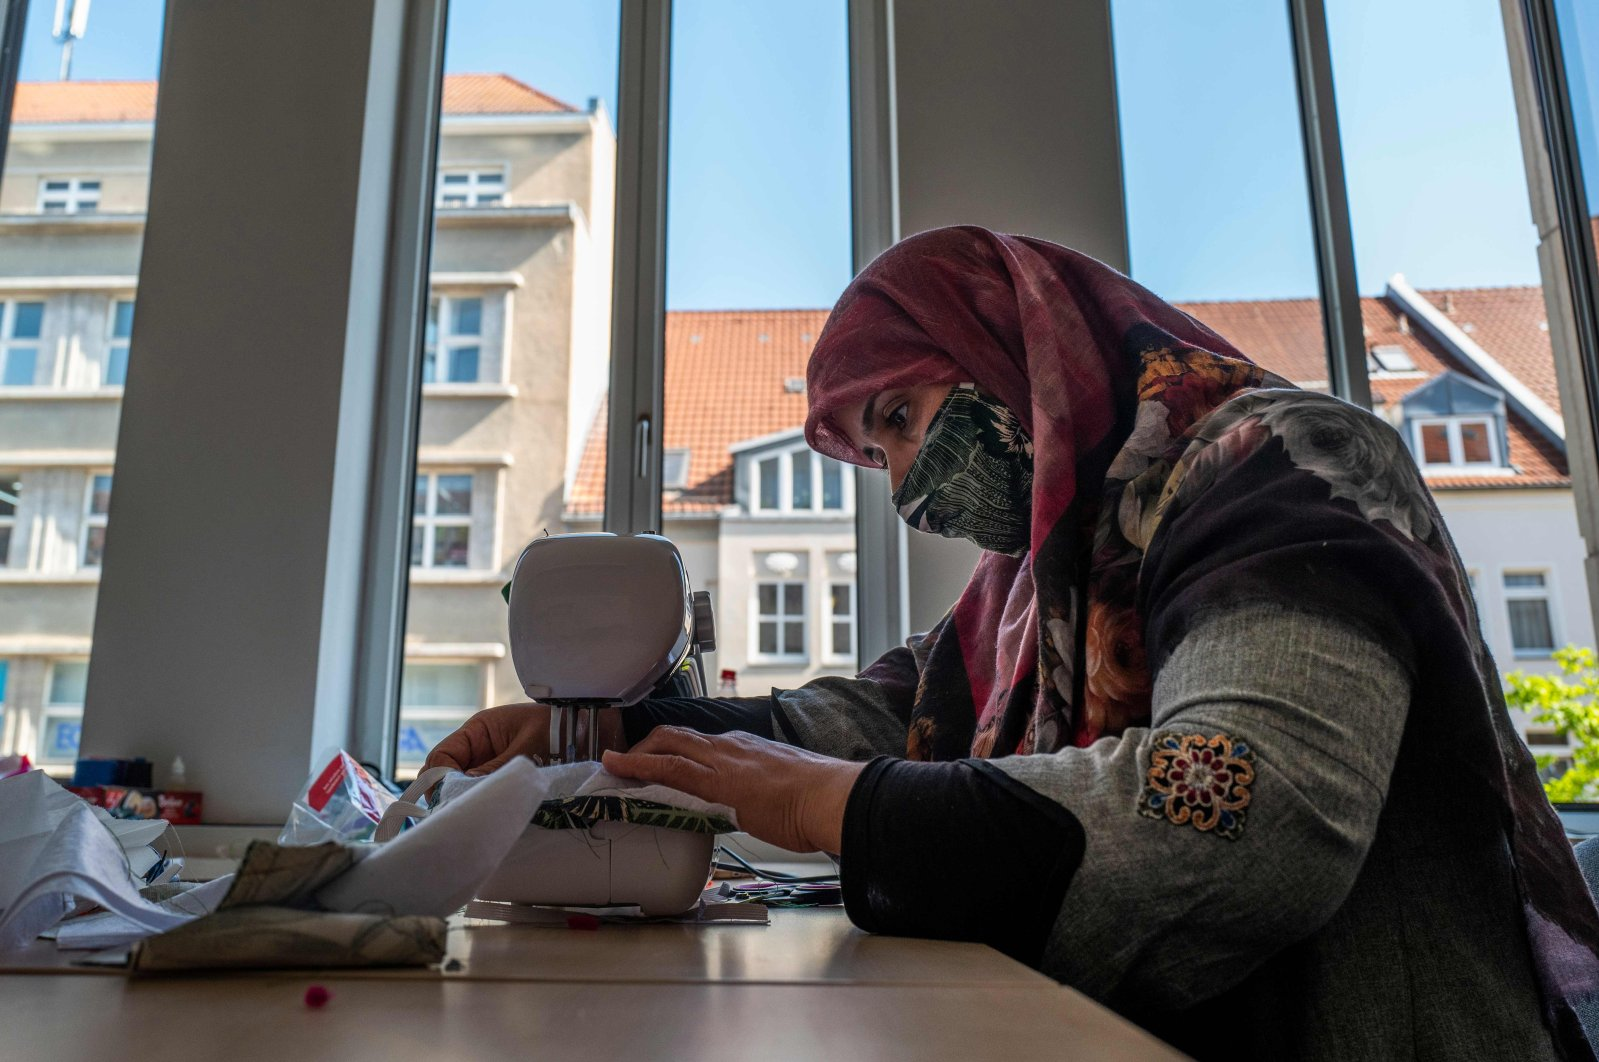 A refugee from Afghanistan sews face covers  amid the COVID-19 pandemic in Berlin, Germany on April 23, 2020. (AFP Photo)